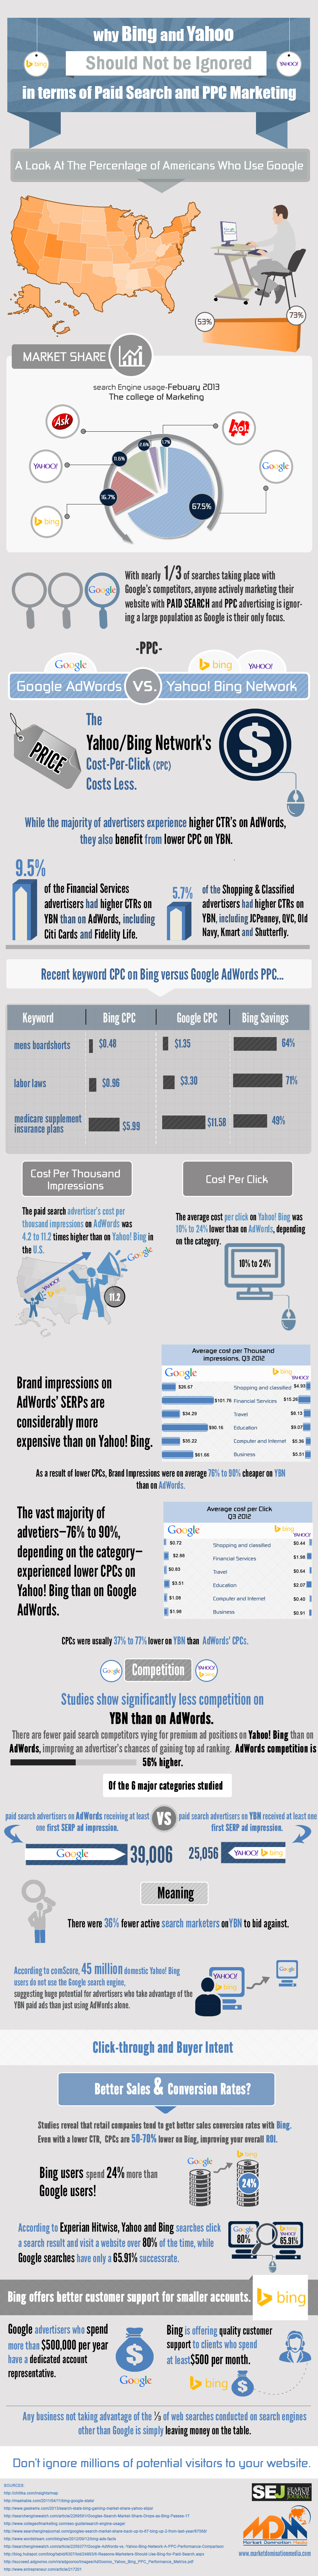 Stop this PPC Google Vs Bing Thing: Why Both Bing & Google Matter?